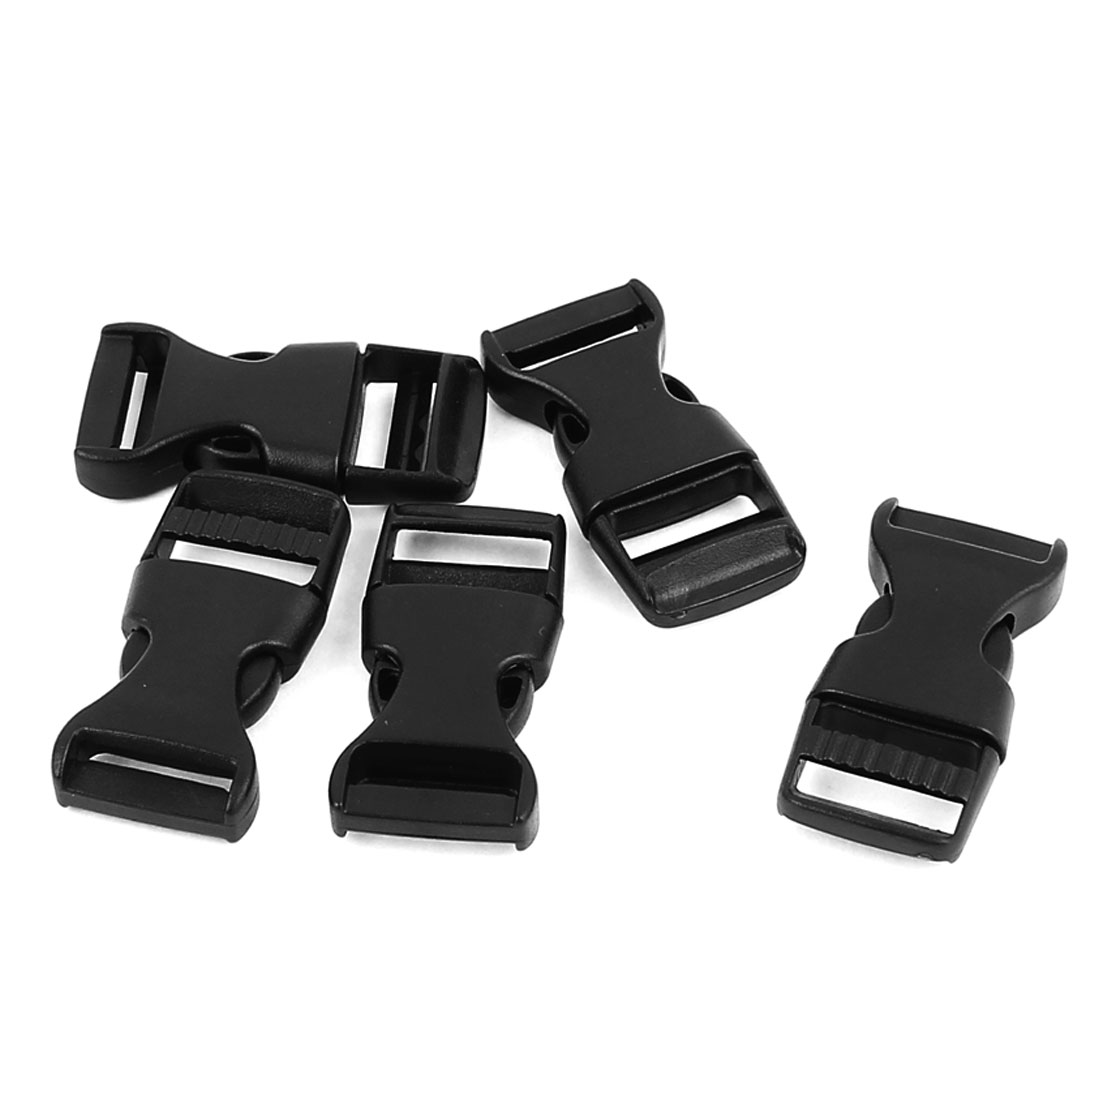 5pcs Black Plastic Pack Bag Side Quick Release Clasp Buckles for 15mm Webbing Strap Band